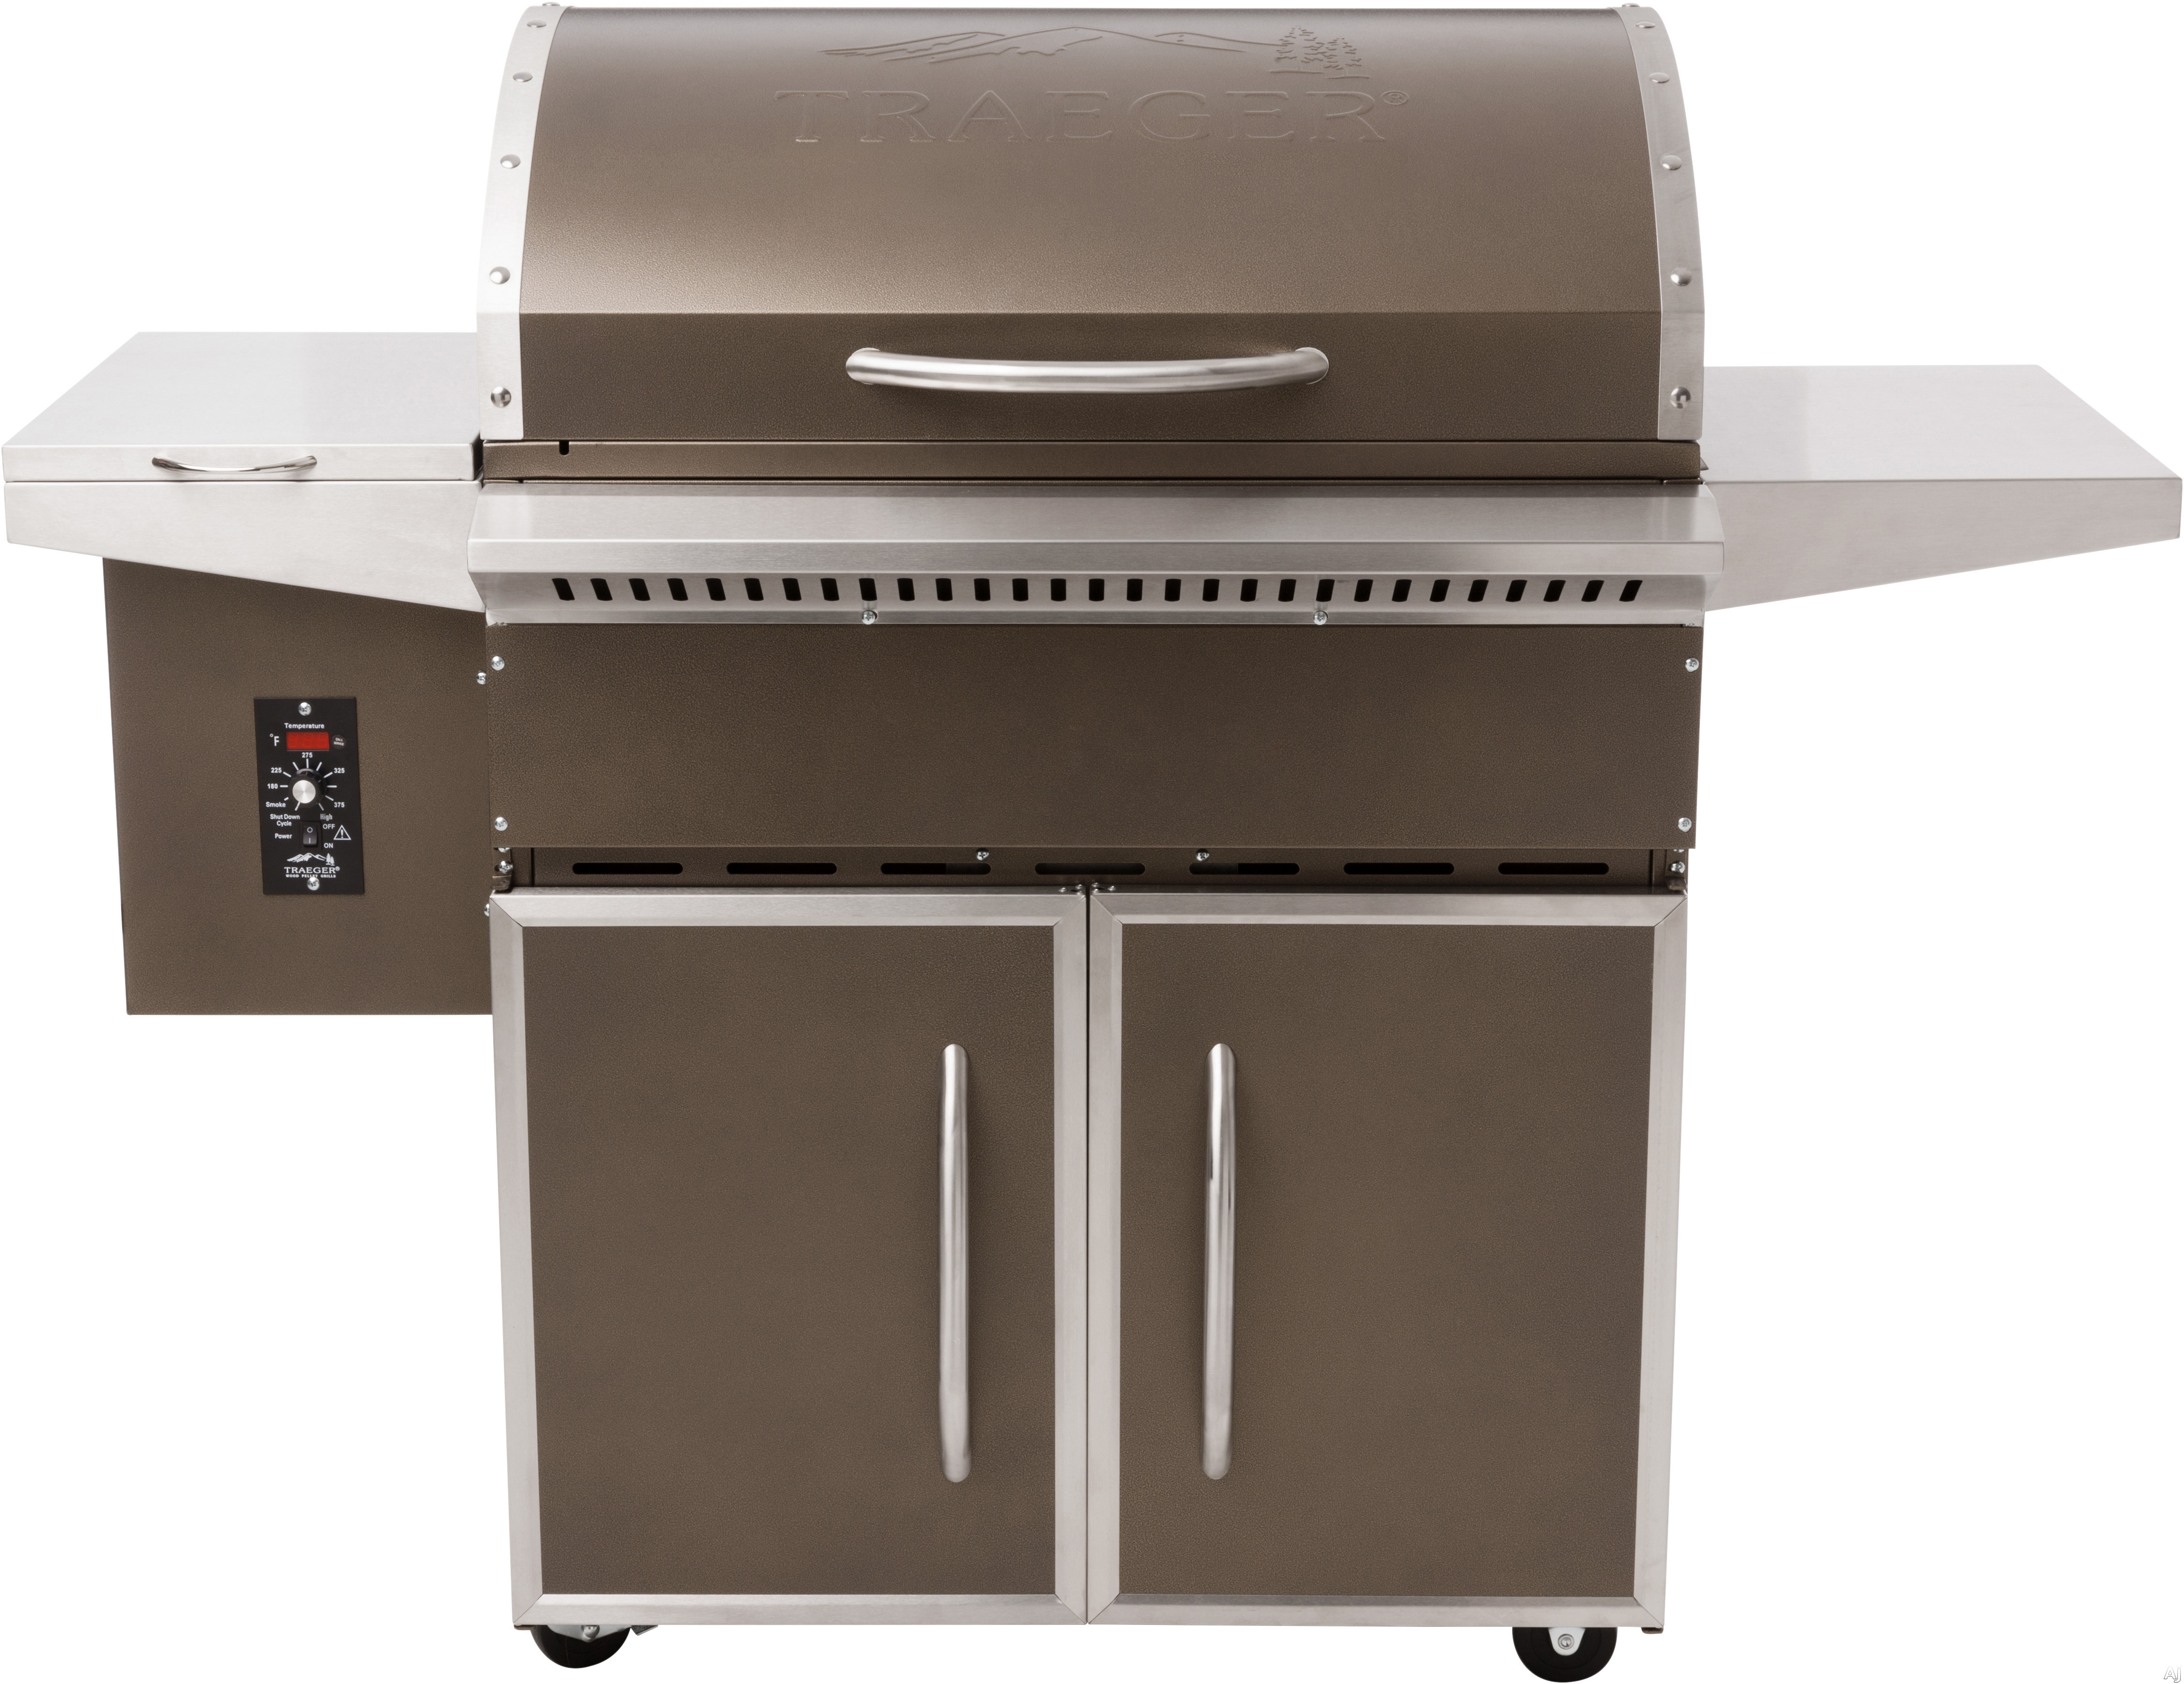 Traeger Select Elite TFS60LZAC 57 Inch Freestanding Wood Pellet Grill with 589 sq. in. Grilling Area, 36,000 BTUs, Locking Caster Legs, One-Button Ignition, Convection Fan, Variable Auger, Automatic Shut Down Cycle and Optional Hardwood Pellets